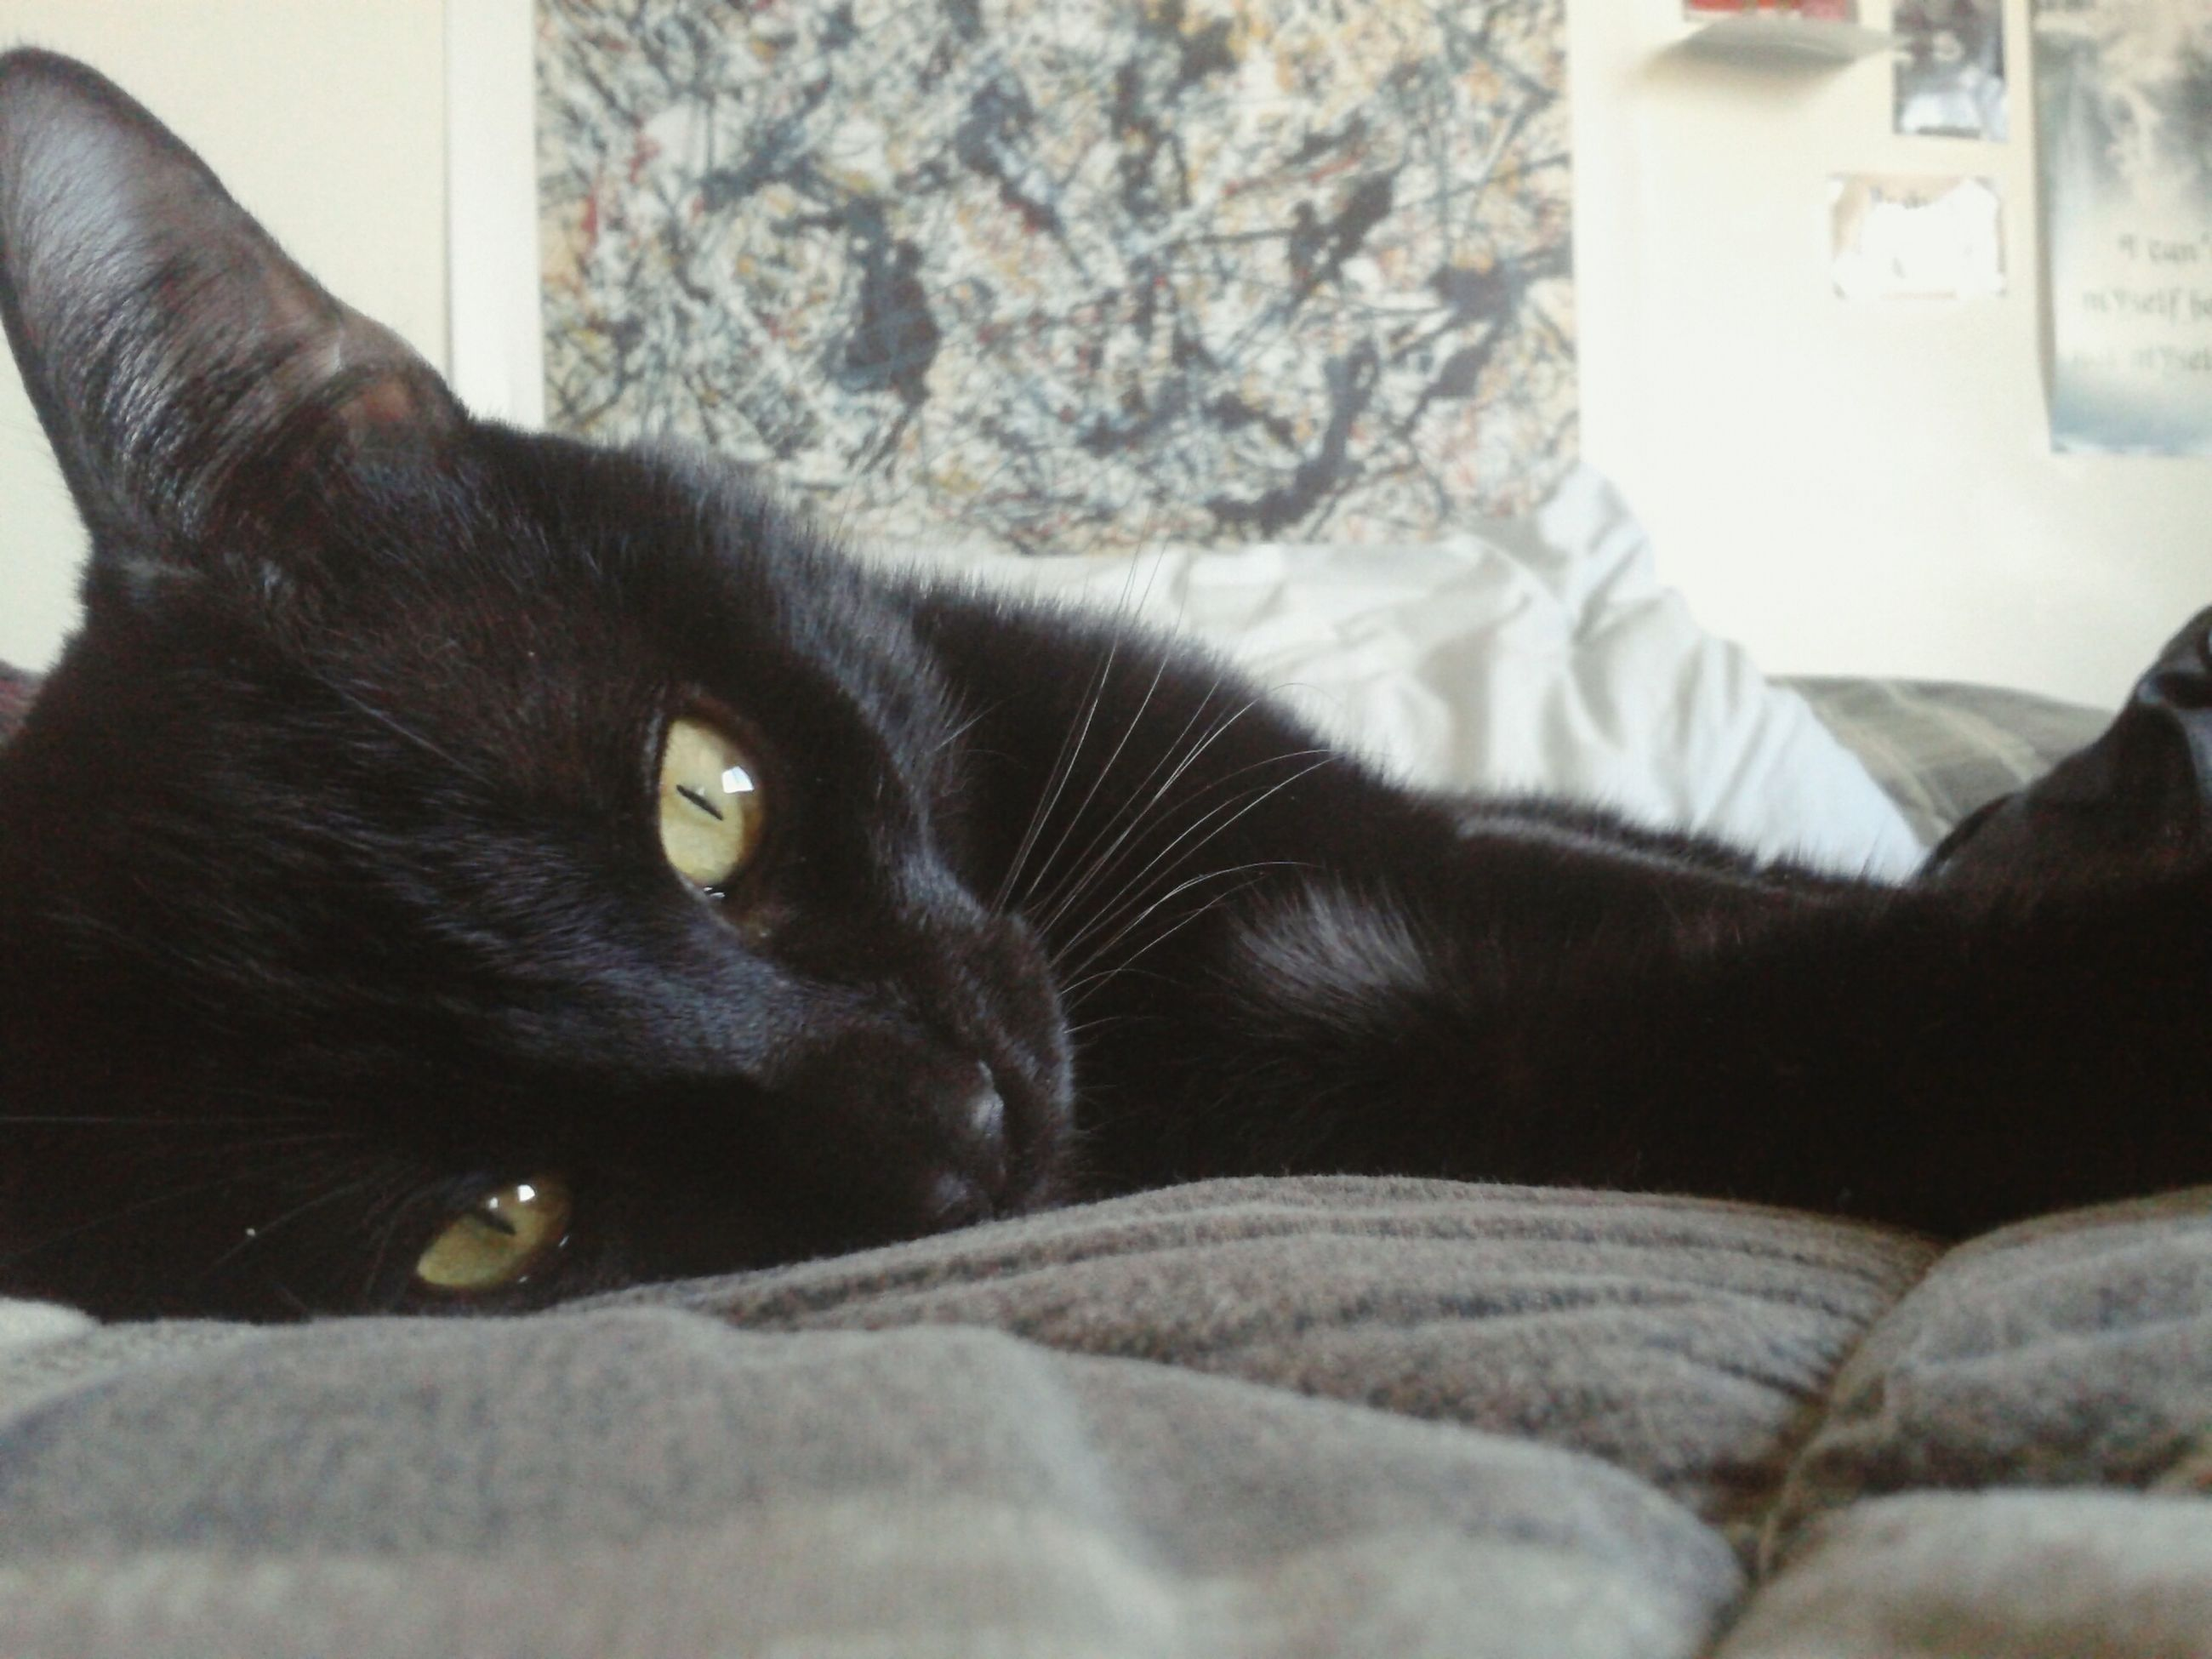 pets, indoors, domestic animals, domestic cat, cat, animal themes, one animal, mammal, relaxation, feline, bed, home interior, lying down, resting, whisker, sofa, portrait, black color, home, looking at camera